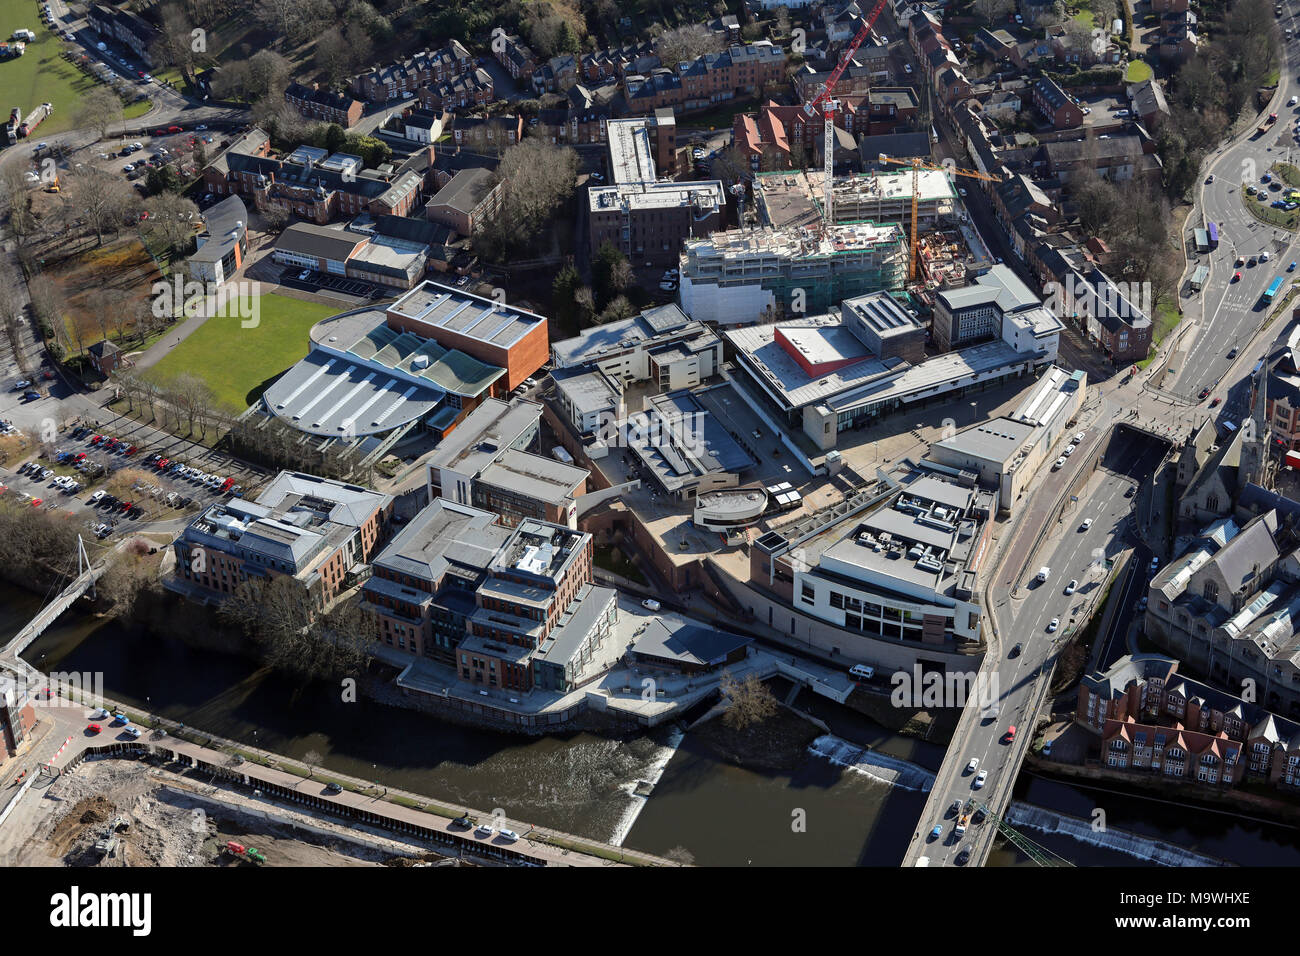 Aerial View Of Hm Passport Office Durham Freeman S Quay Leisure